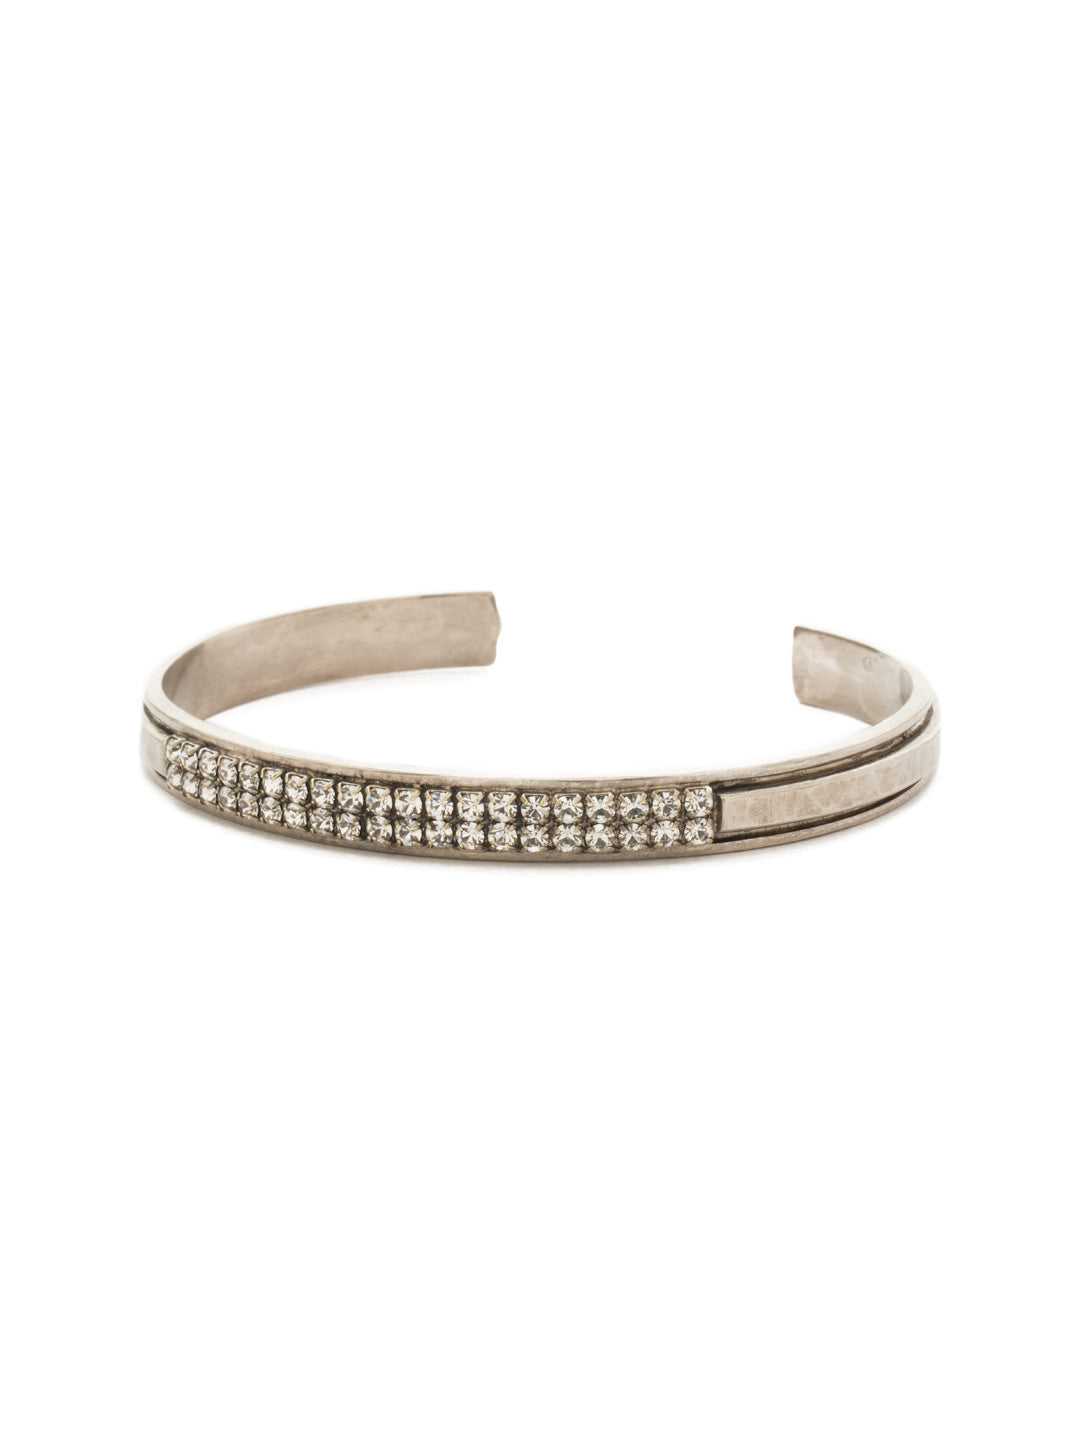 All Lined Up Cuff Bracelet - BDW22ASCRY